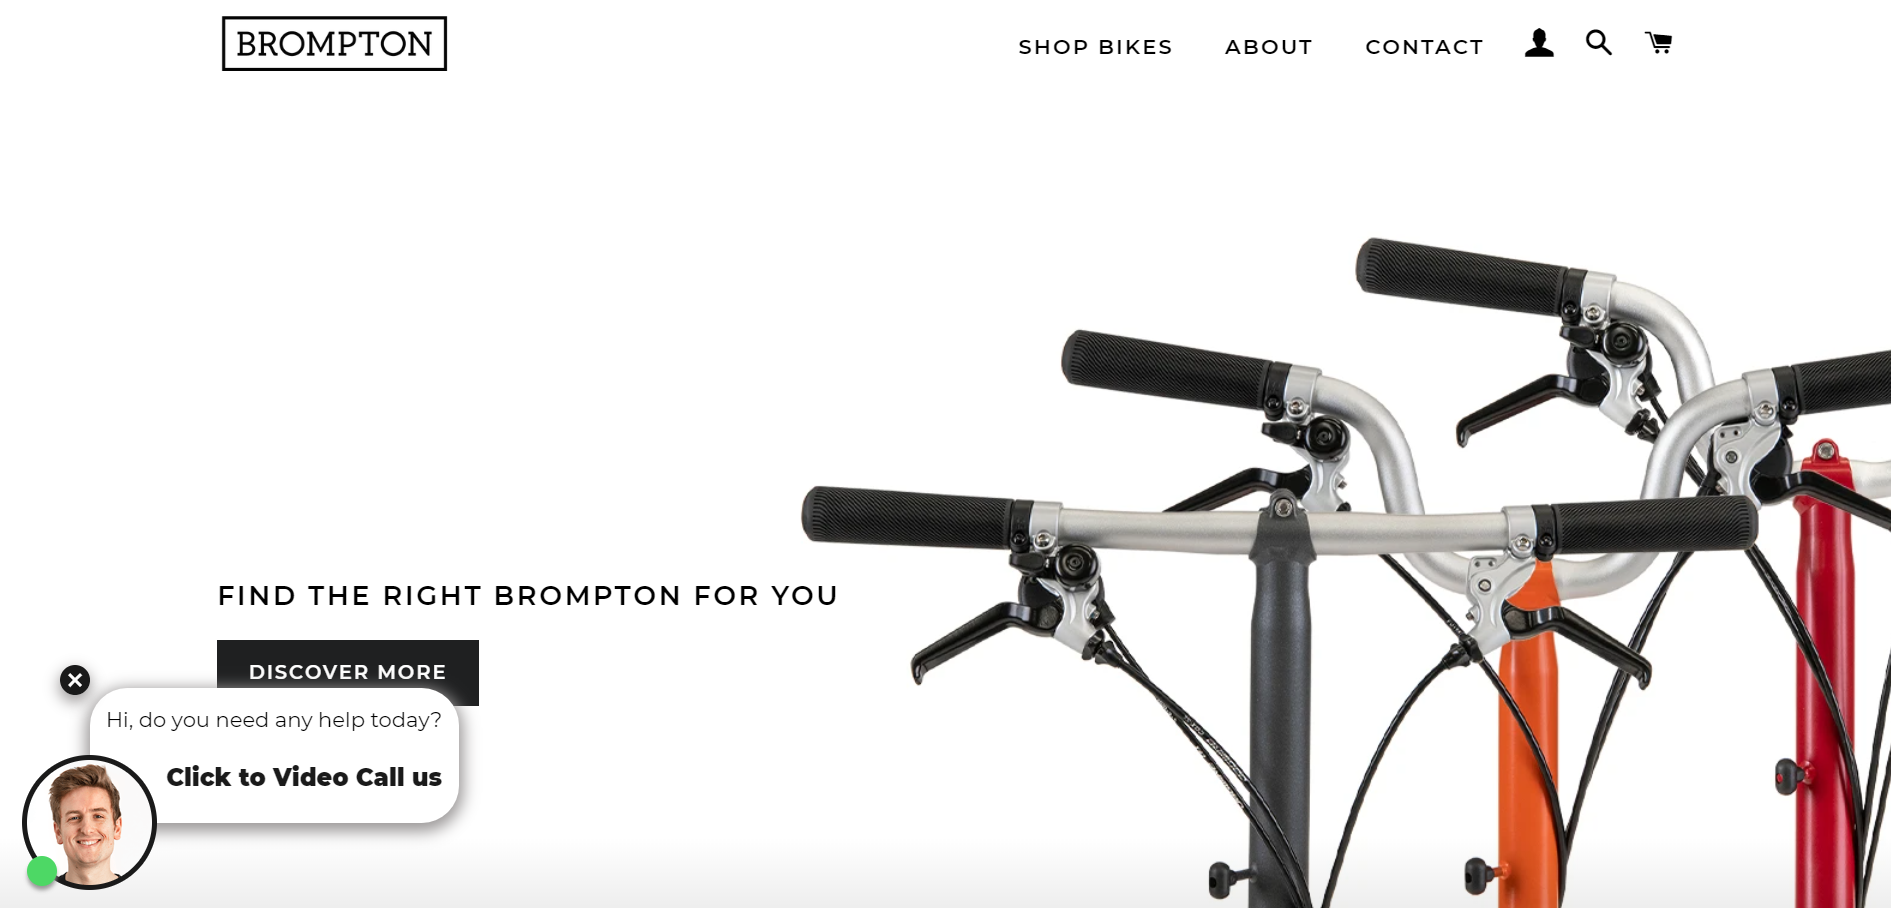 Brompton Bicycles recreating offline shopping experiences online blog